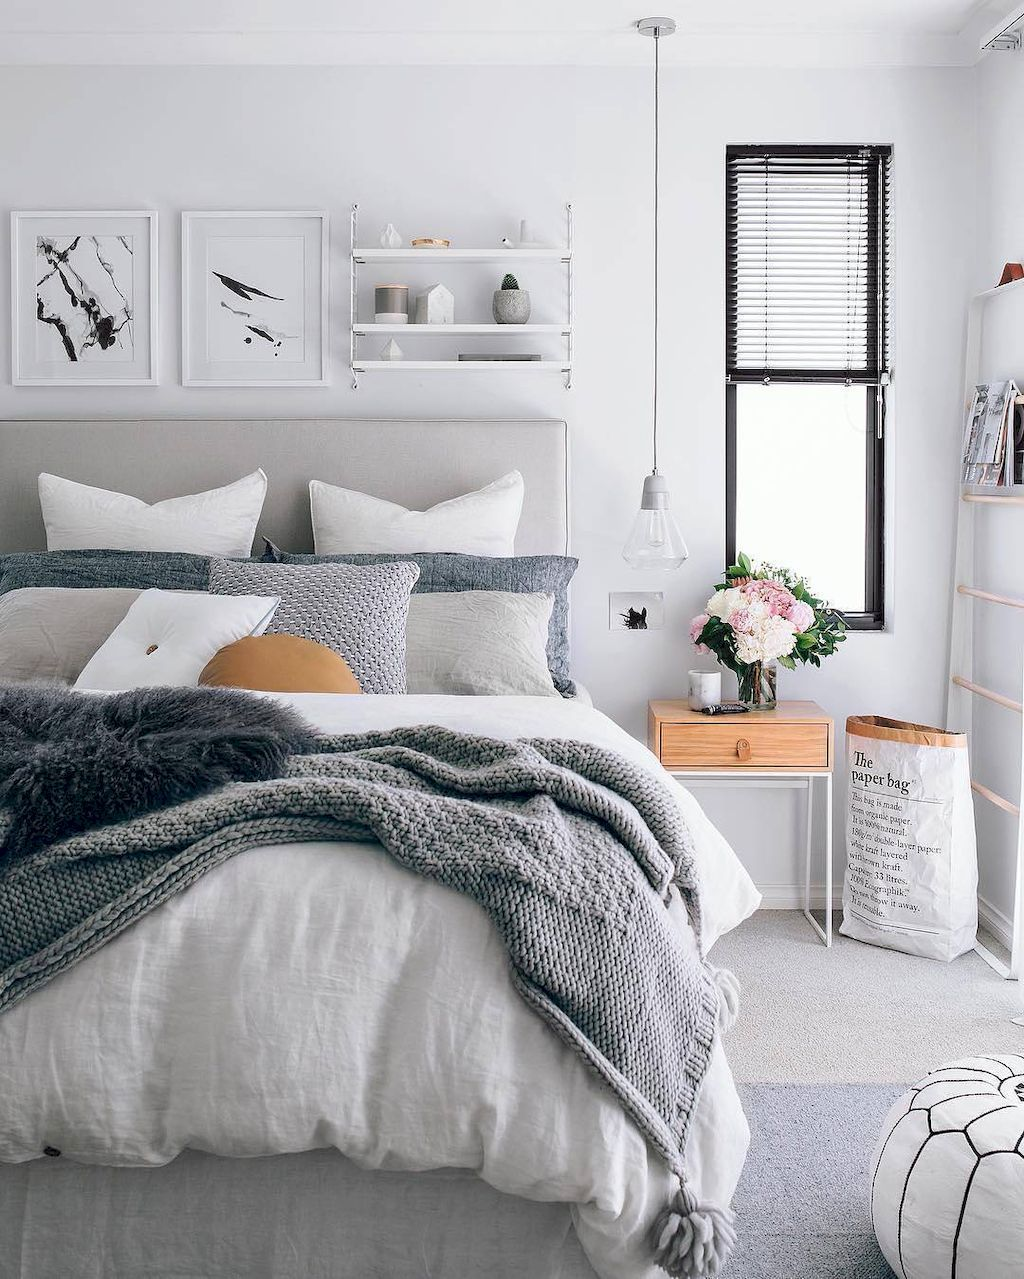 Bedroom Decorations Pinterest Nice 65 Inspiring Modern Farmhouse Bedroom Decor Ideas